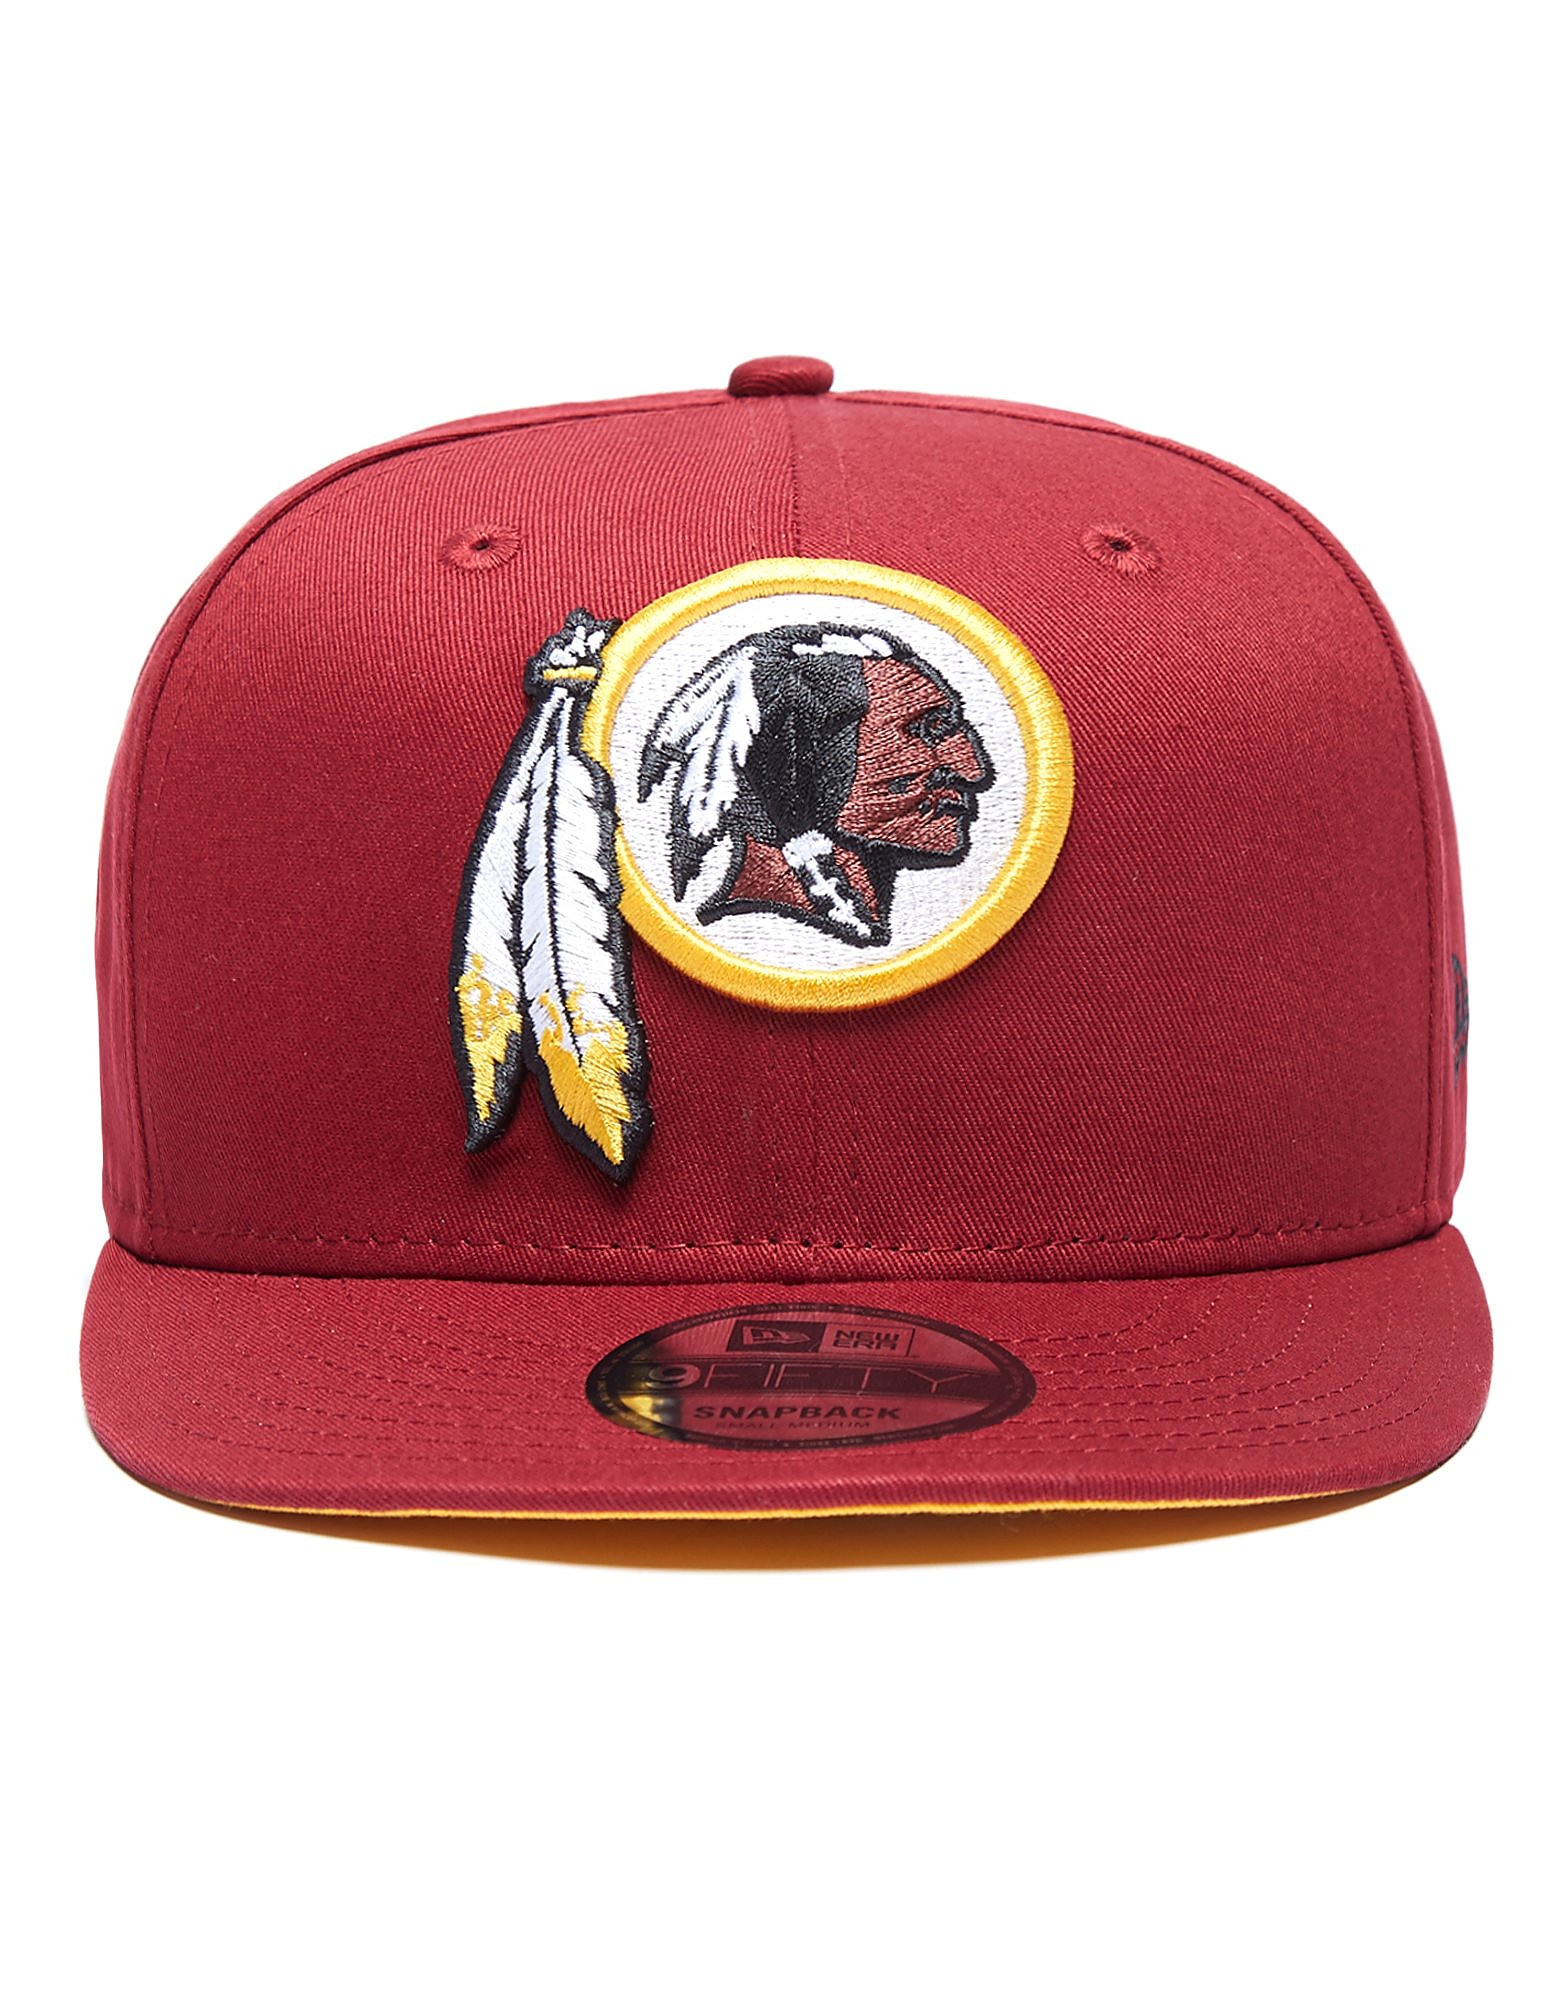 New Era NFL Washington Redskins Baseballcap